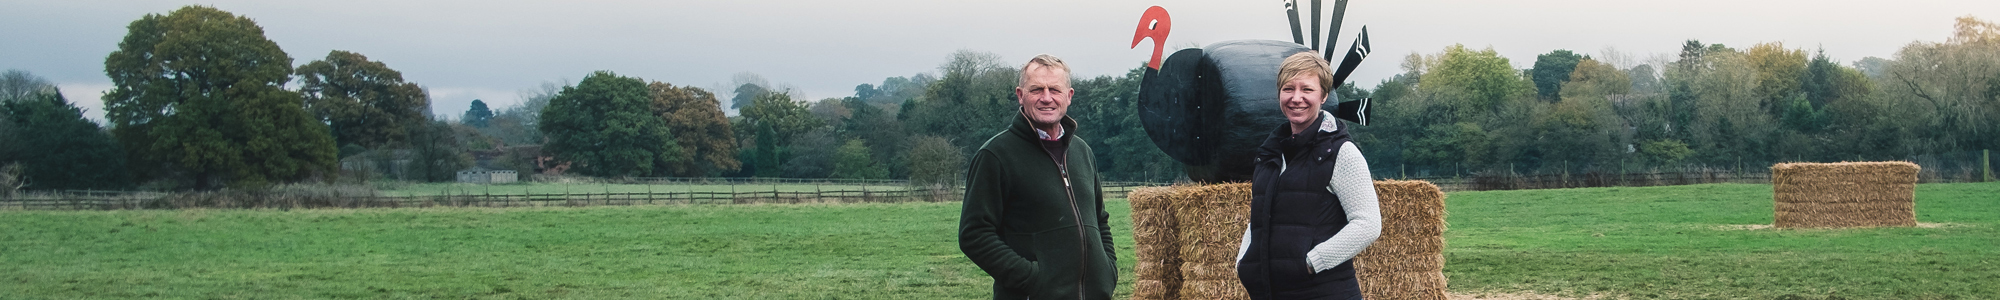 Heart of England Farms - About Us